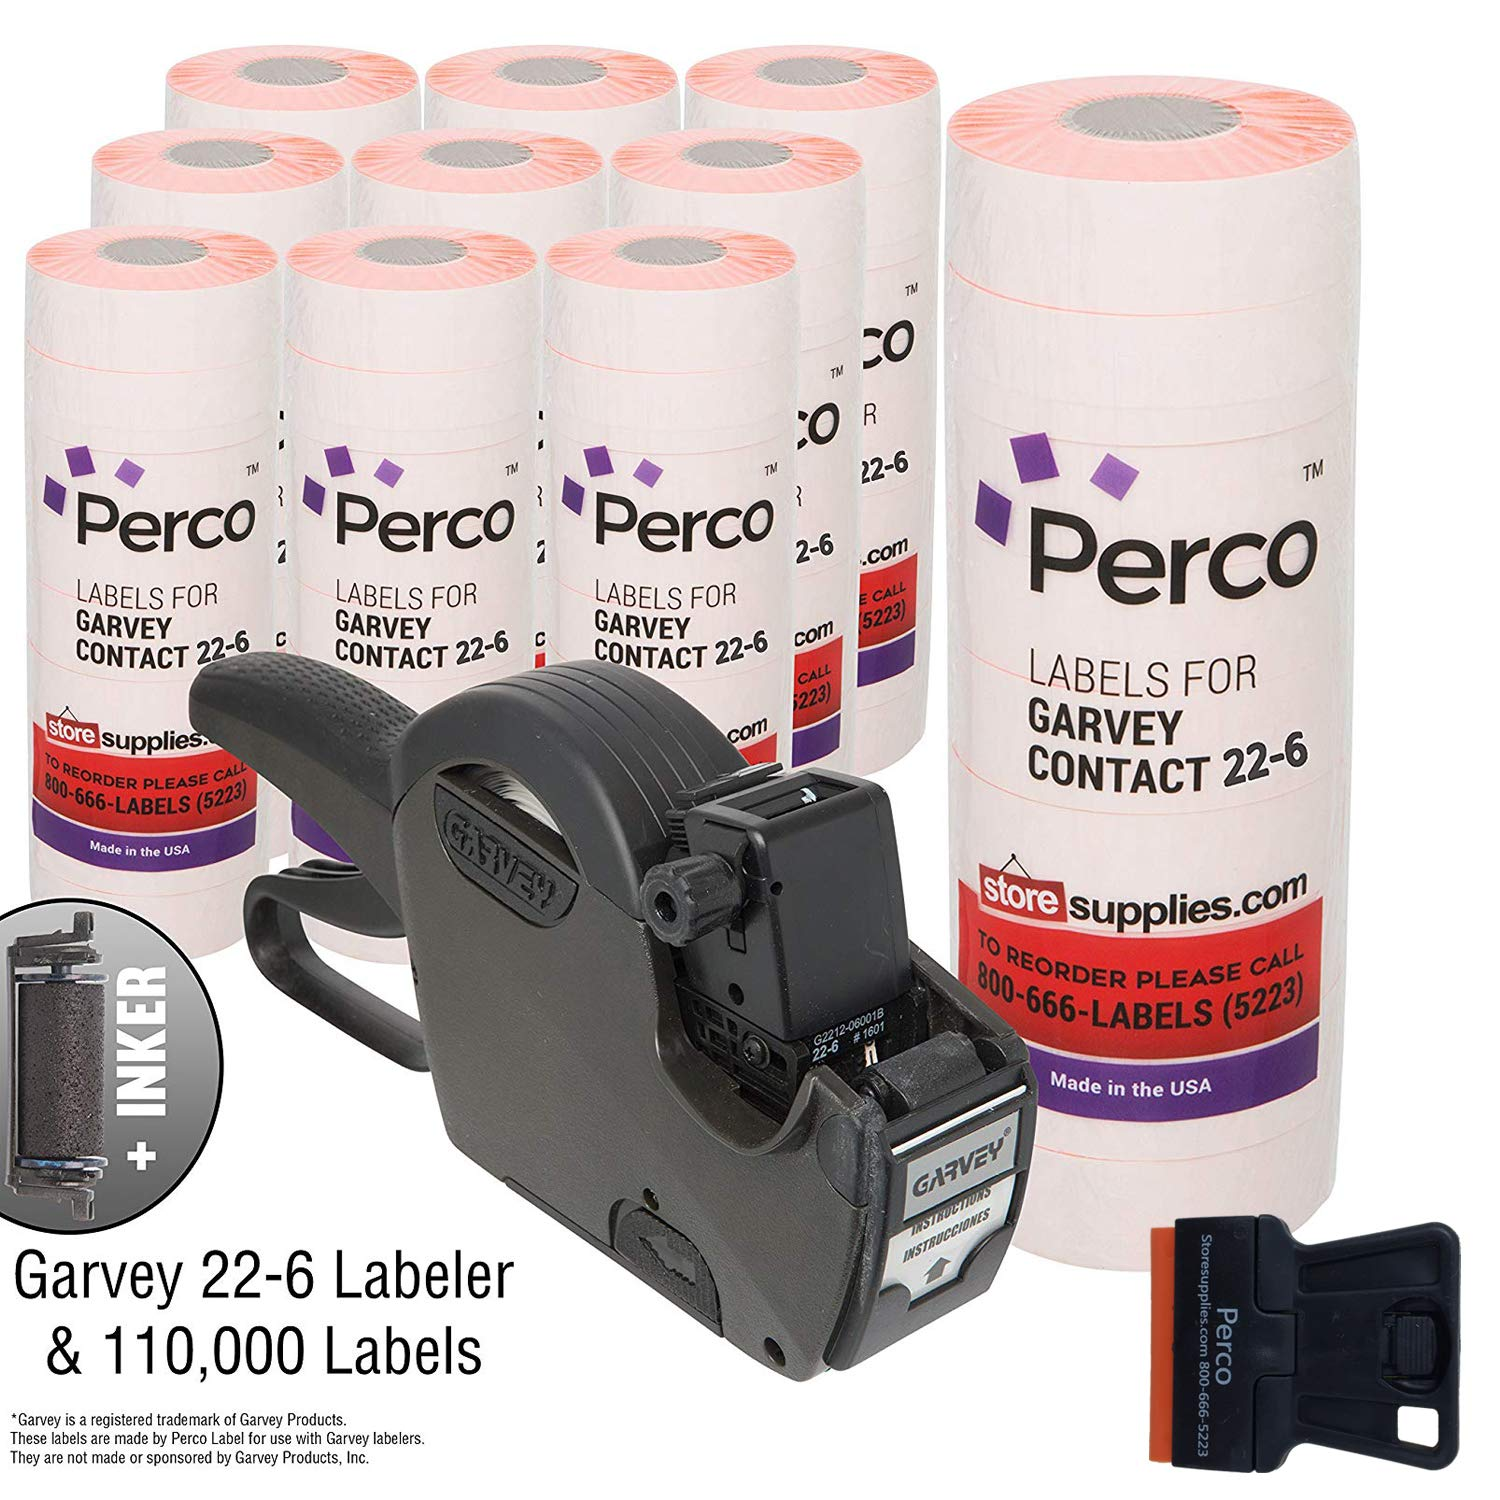 Garvey 22-6 Pricing Gun with Labels Value Pack: Includes Garvey 22-6 Price Gun, 110,000 Fluorescent Red Pricemarking Labels, 8 Bonus Inkers by Perco (Image #1)